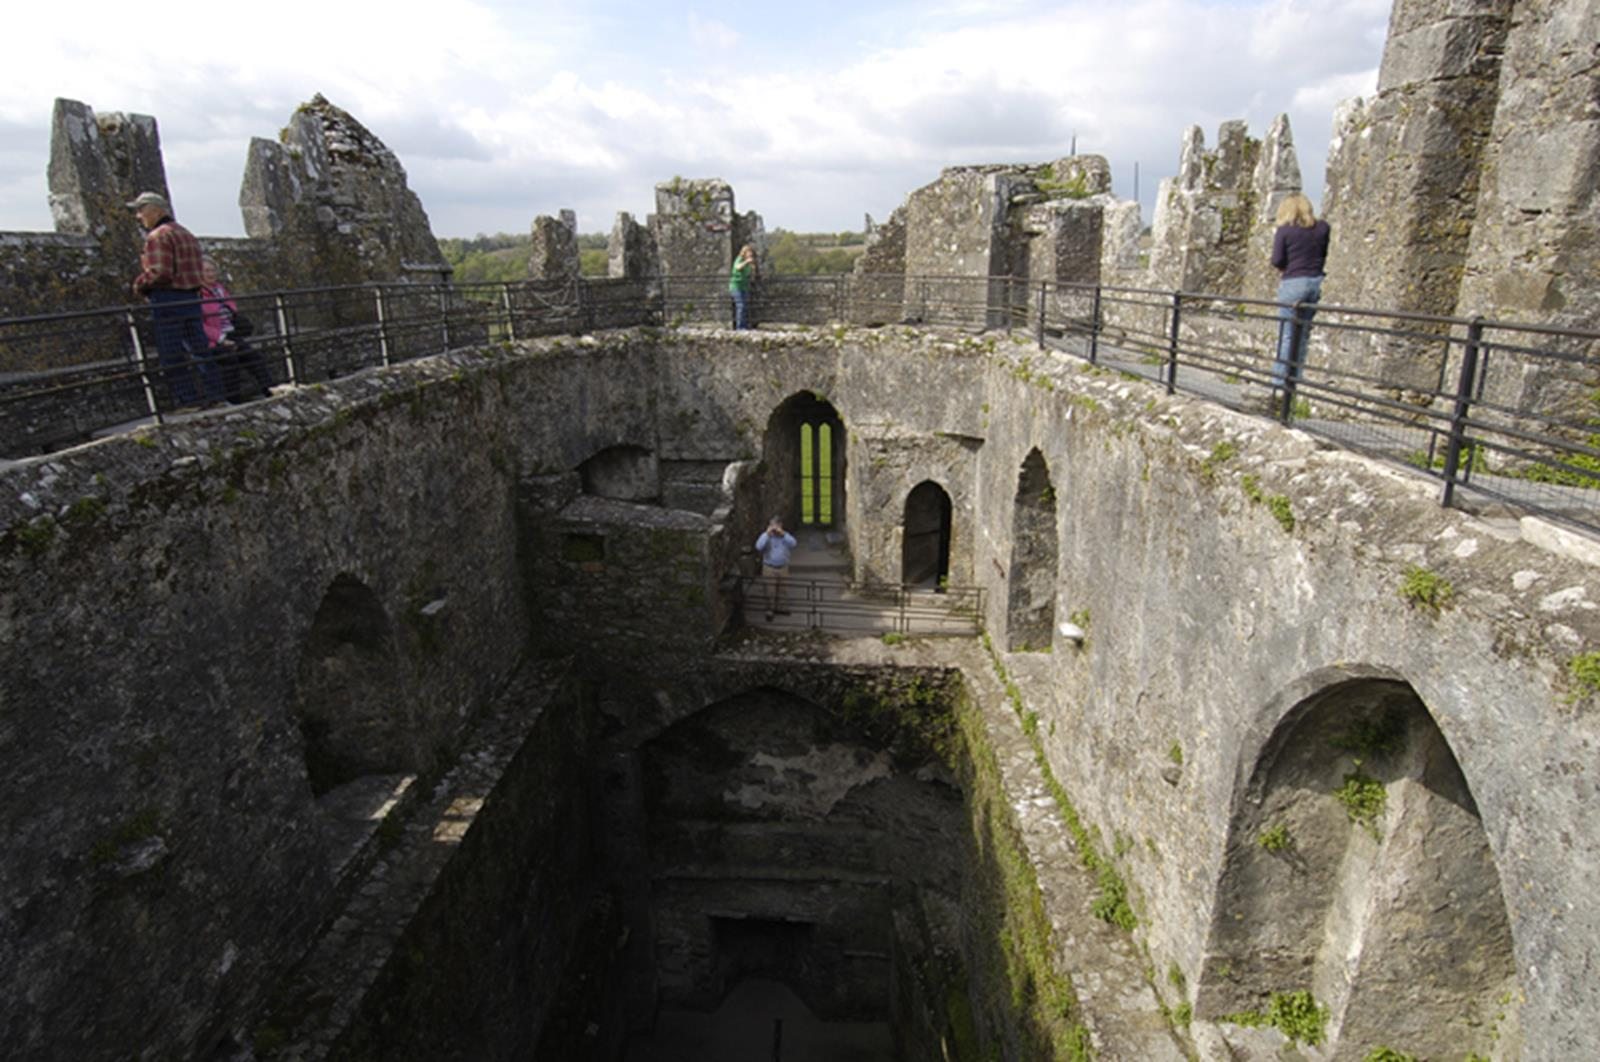 Blarney castle inside